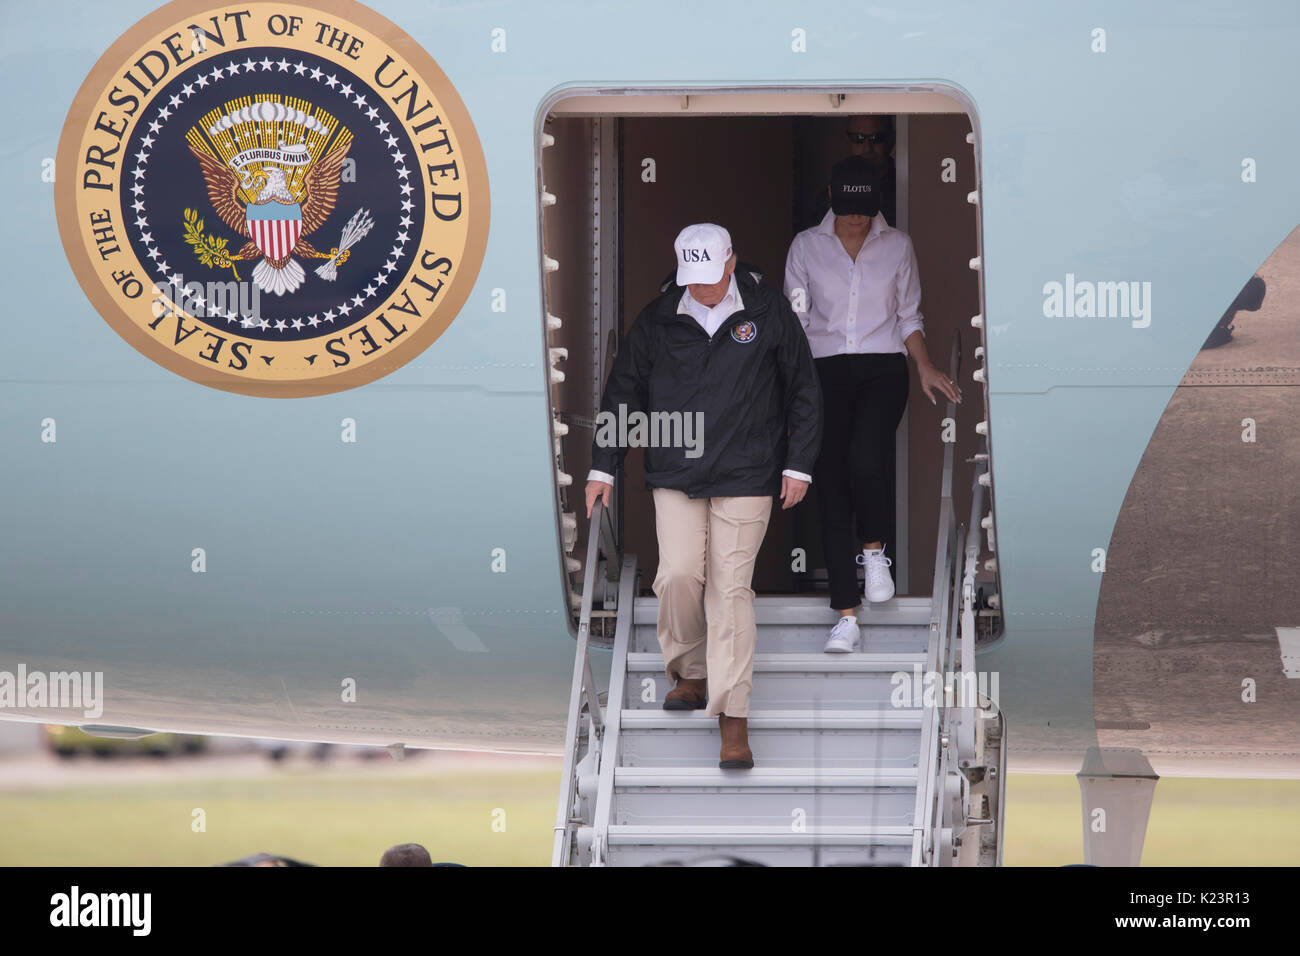 Corpus Christi, Texas, USA. 29th Aug, 2017. U.S. President Donald Trump arrives with First Lady Melania Trump in Corpus Christi to meet with Texas officials for a briefing on Hurricane Harvey cleanup along the heavily damaged Texas coast. Credit: Bob Daemmrich/Alamy Live News - Stock Image